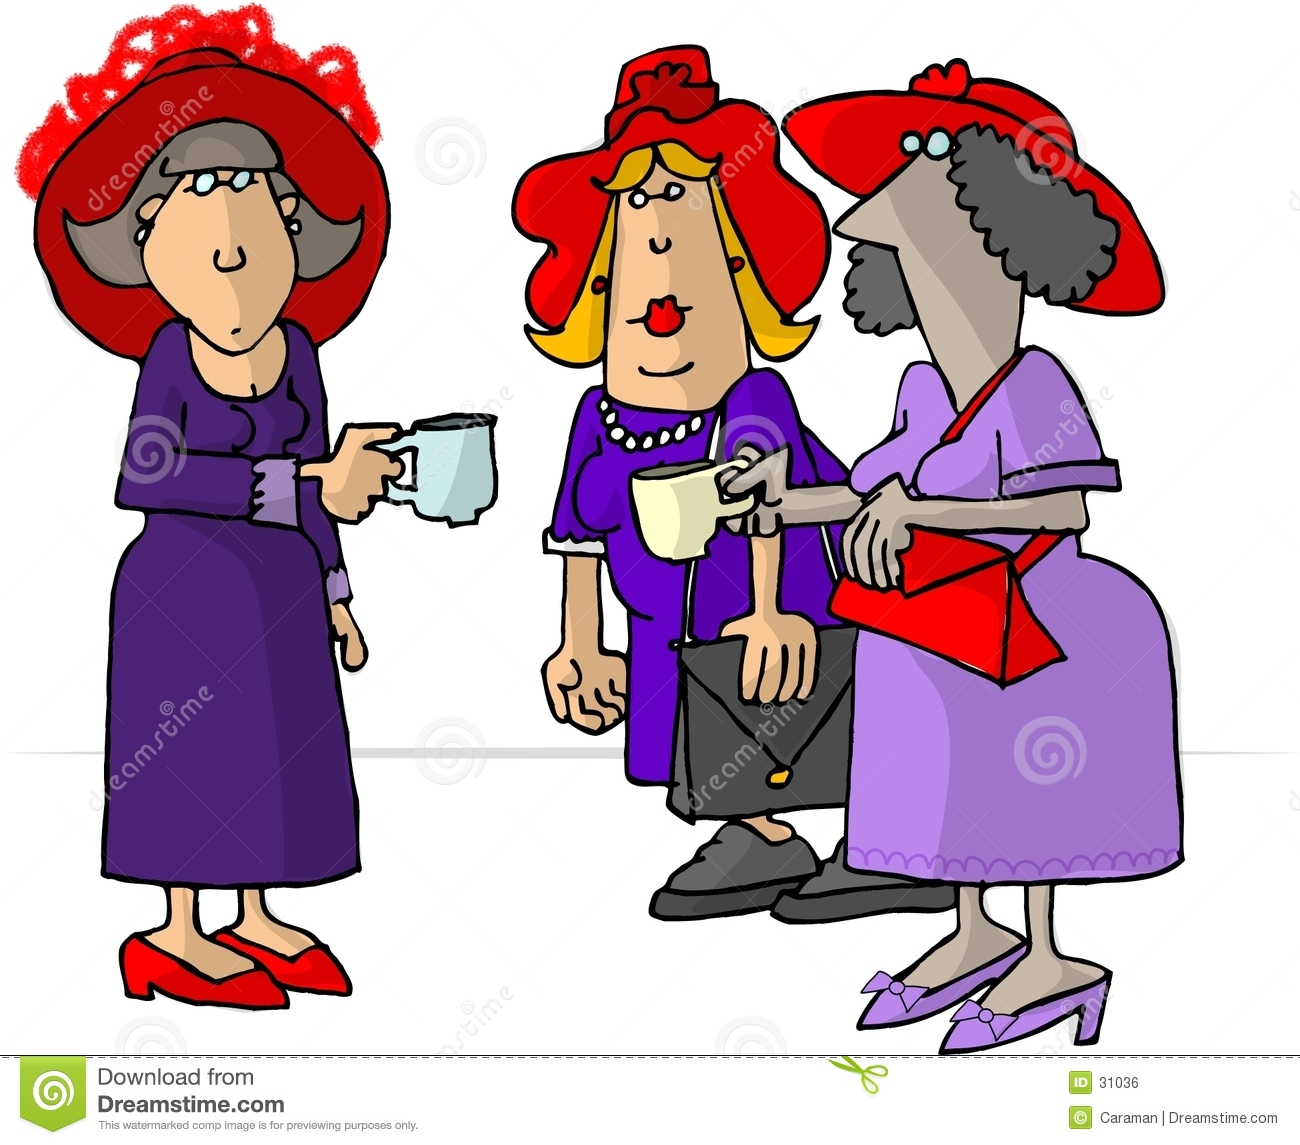 74a69f4124923 Women In Red Hats Drinking Tea Stock Illustration - Illustration of ...